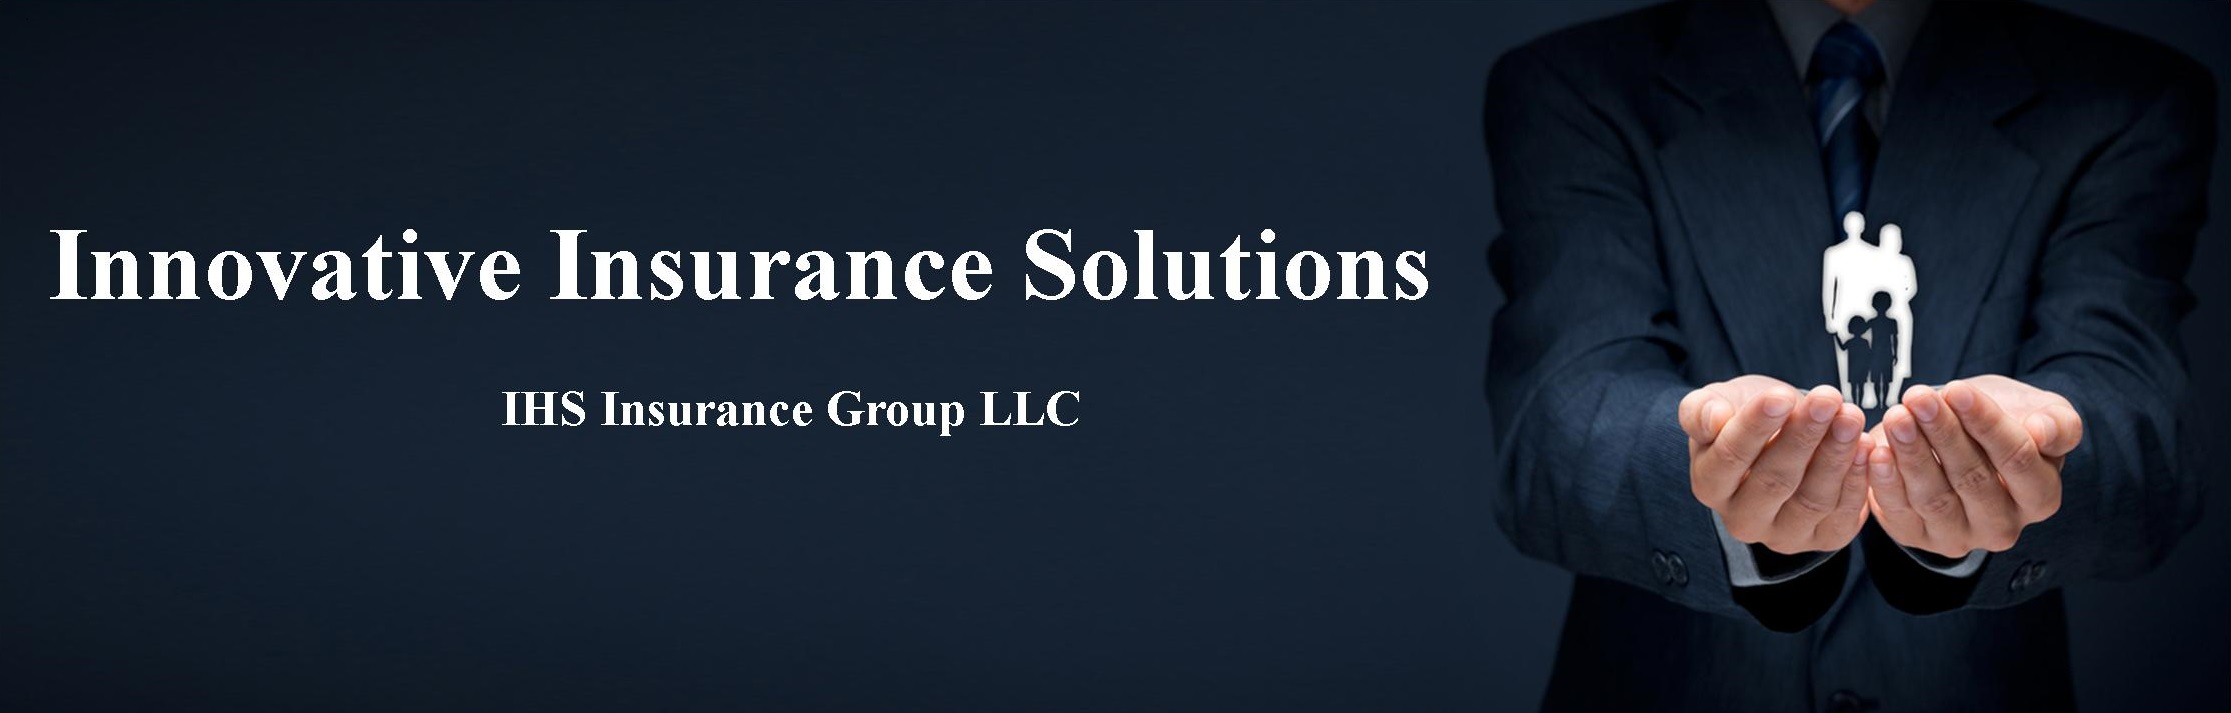 Innovative Insurance Solutions Blog Header